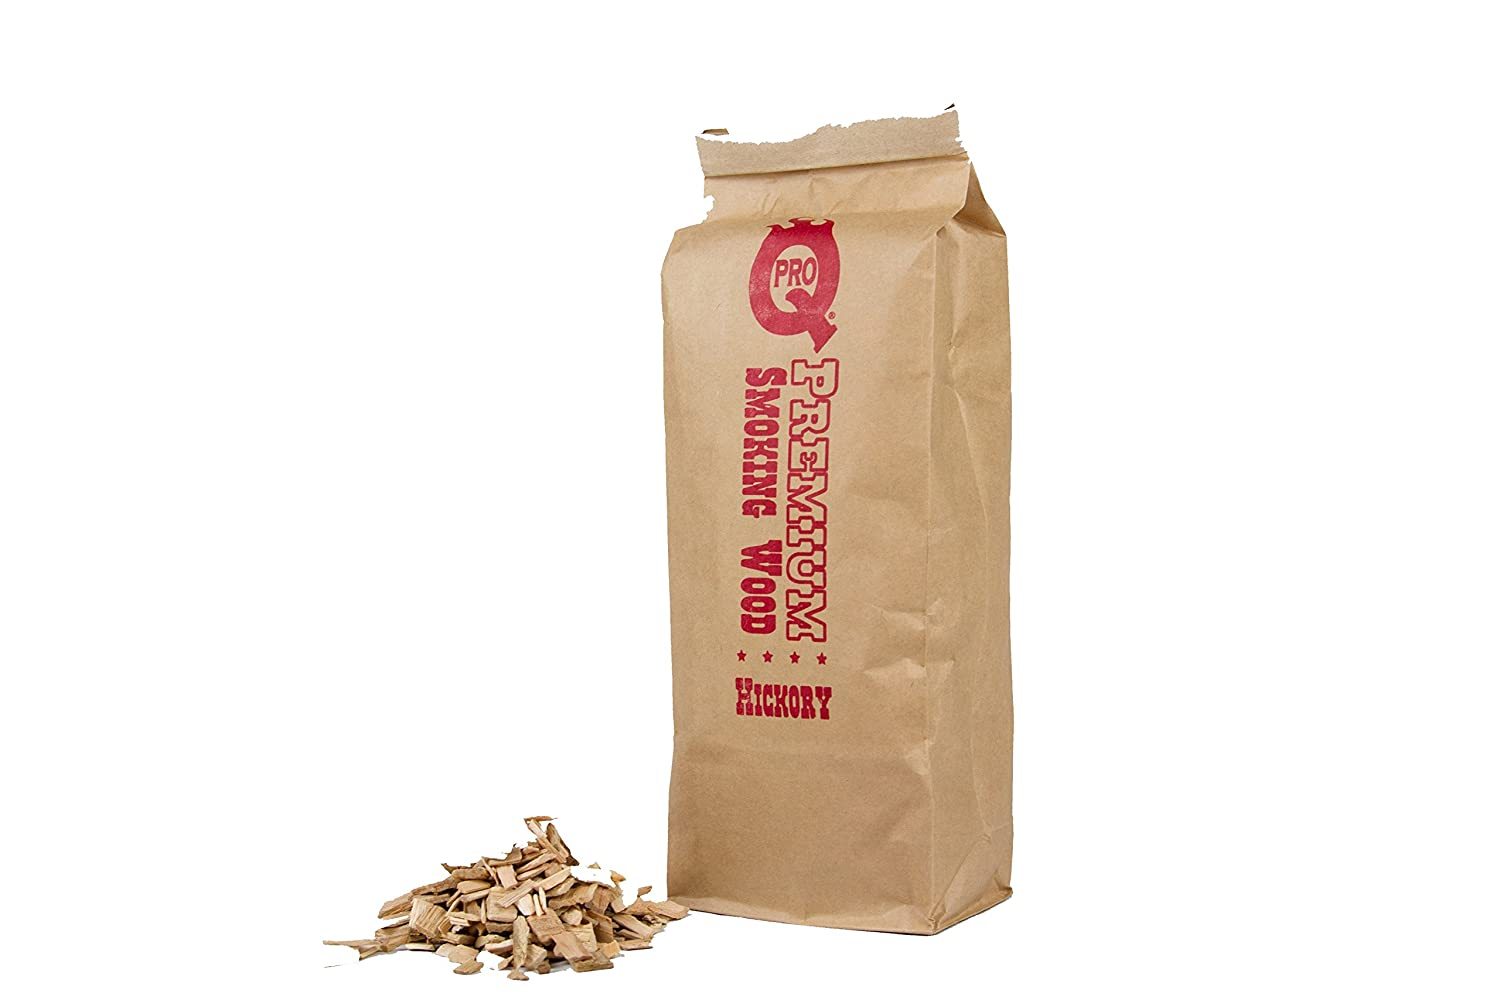 ProQ Wood Chips (5 pack) (Hickory) Mac's BBQ Ltd